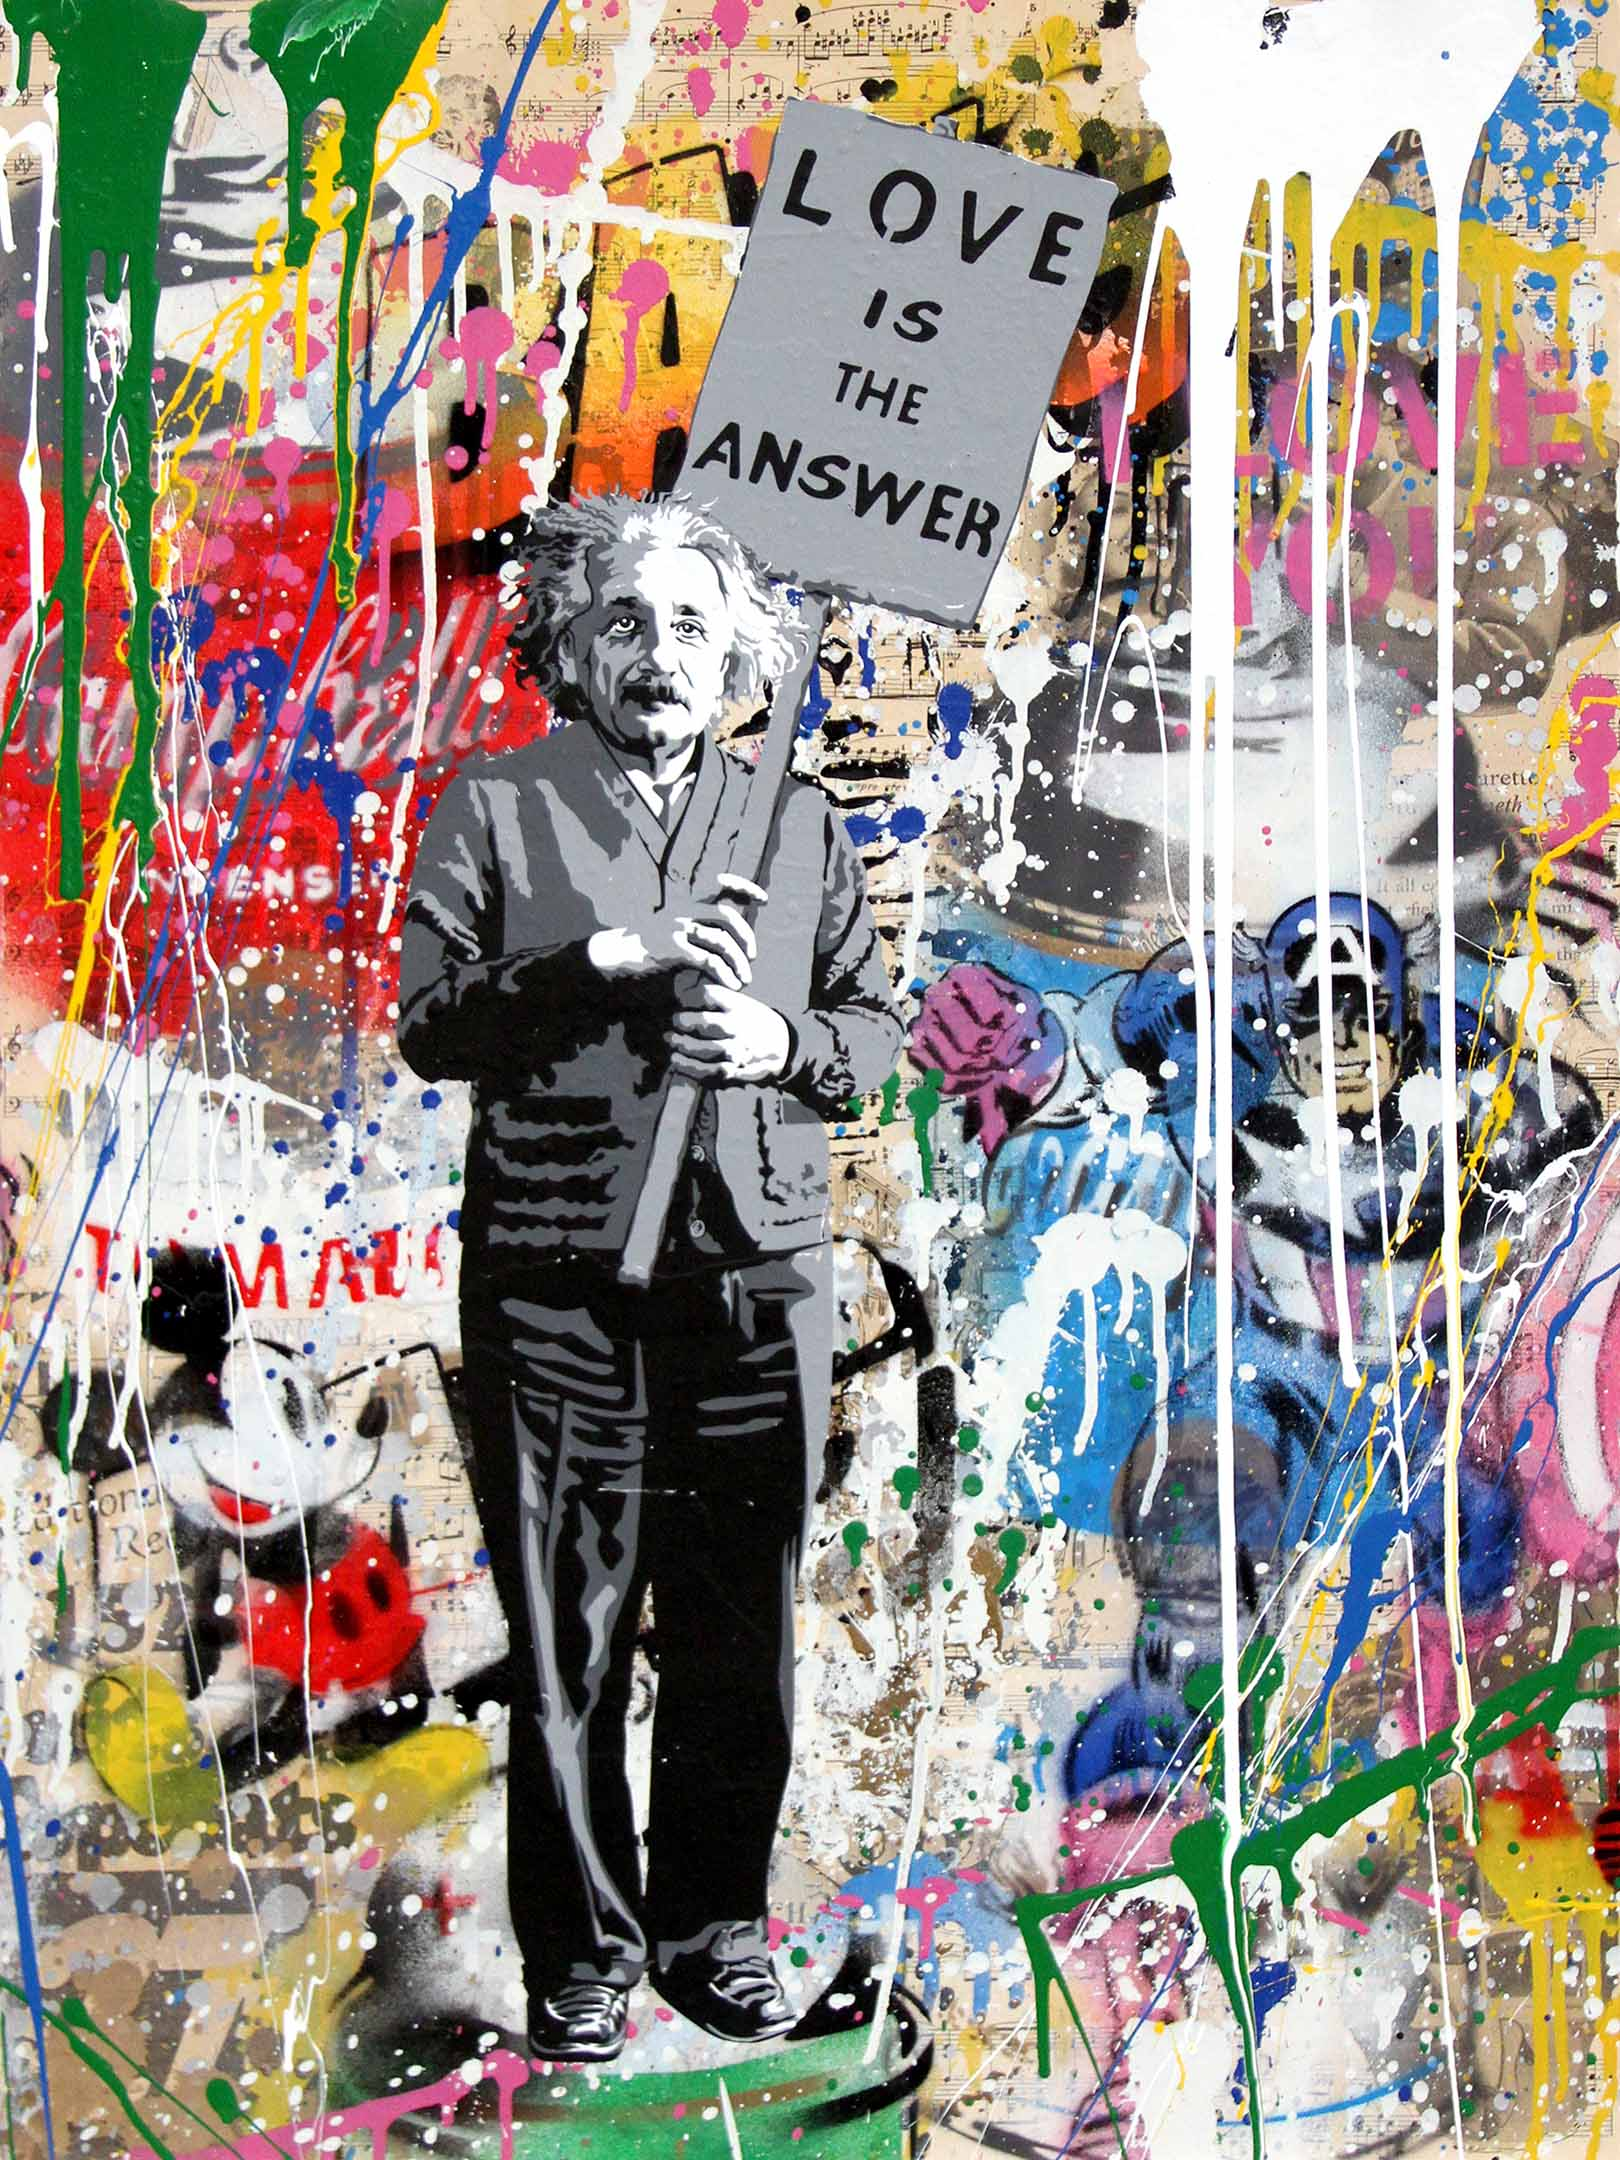 Image: Mr. Brainwash - Denis Bloch Fine Art